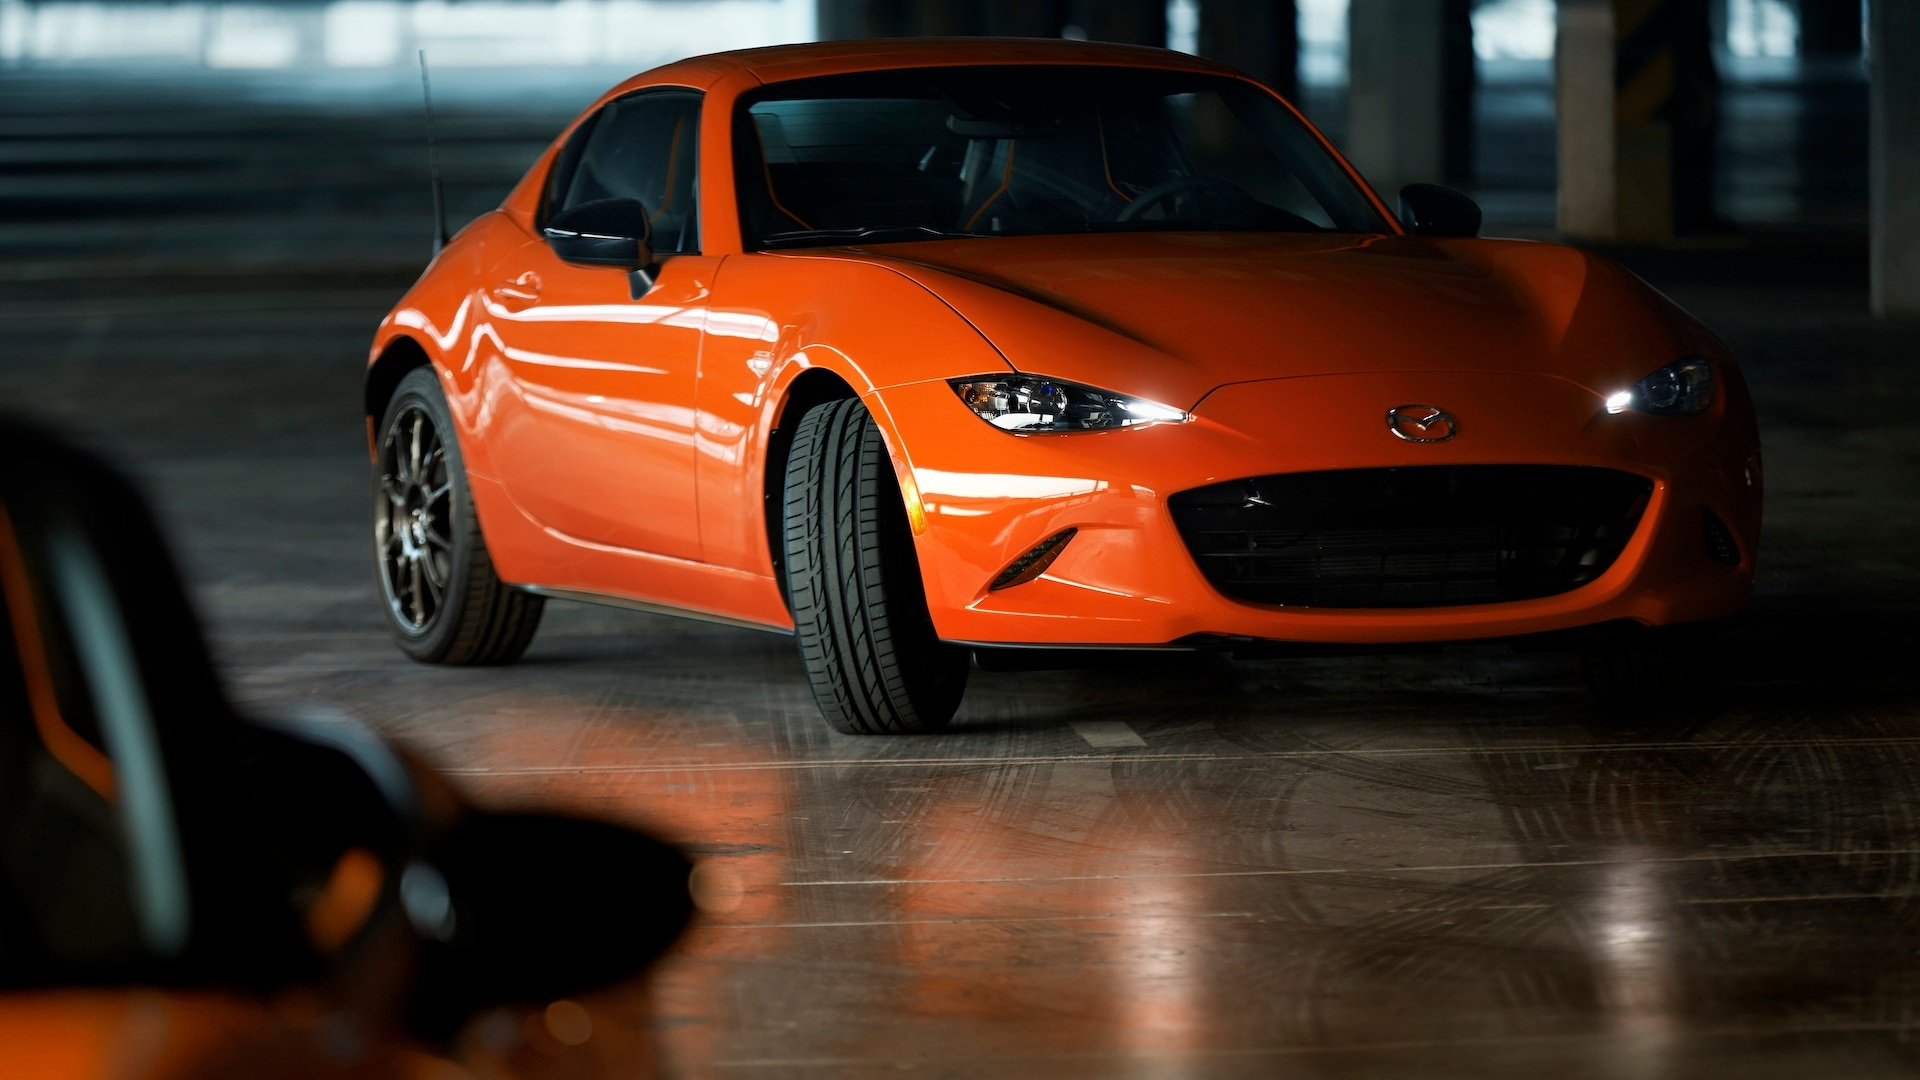 30th Anniversary Mazda MX-5 launched